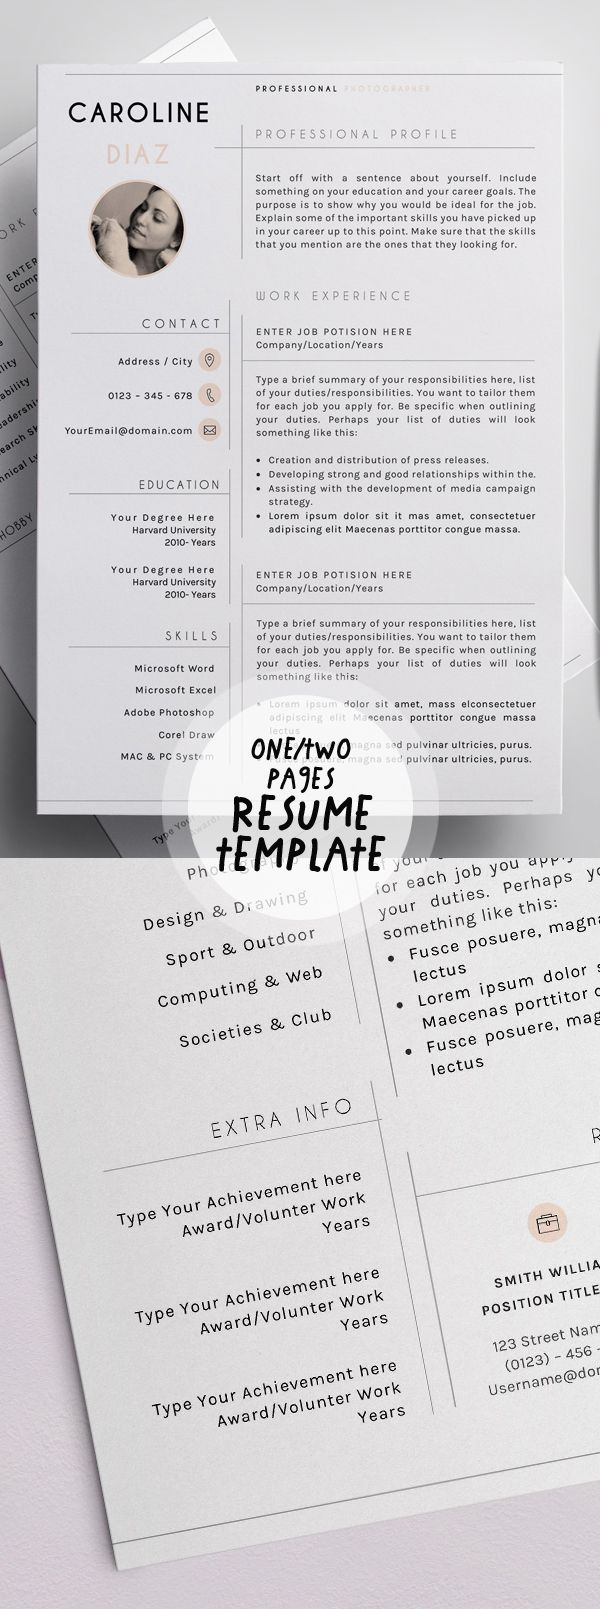 one or two page resume templates misc pinterest template